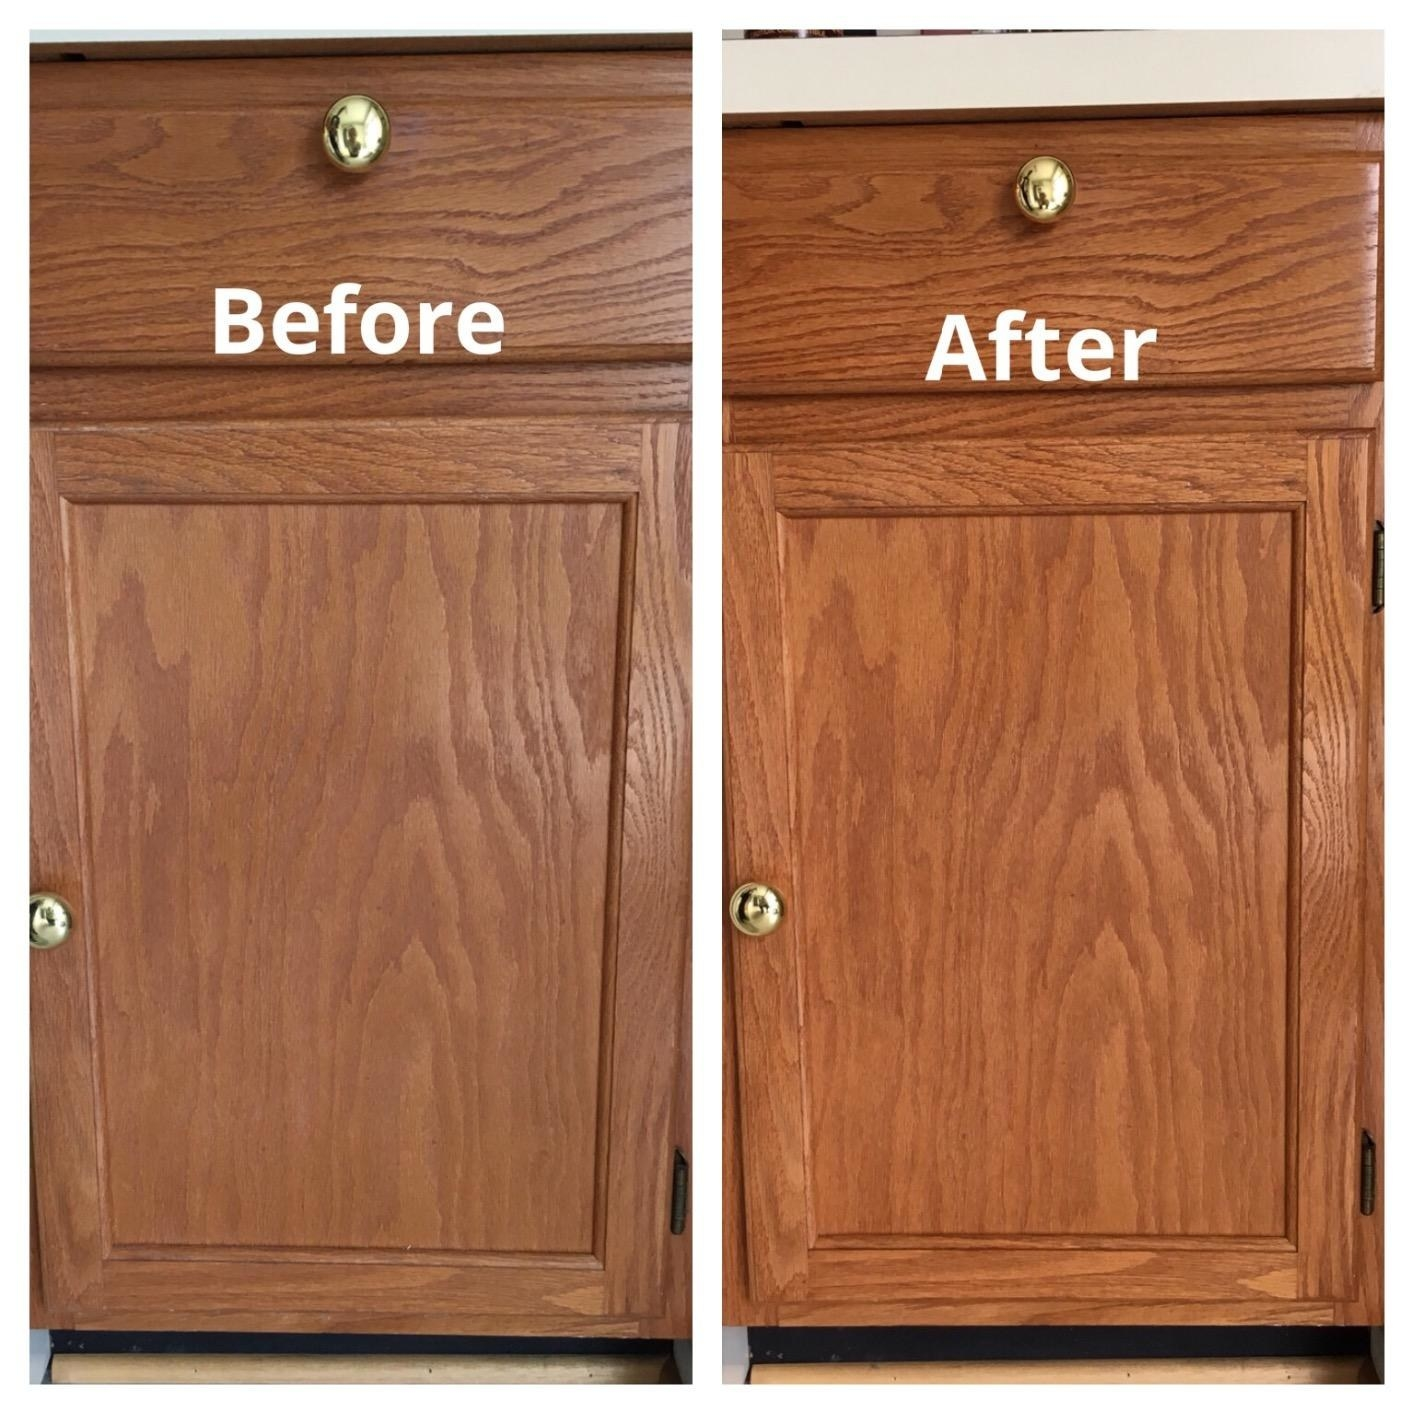 A reviewer's brown cabinet looking dull at first, then looking brighter and cleaner after